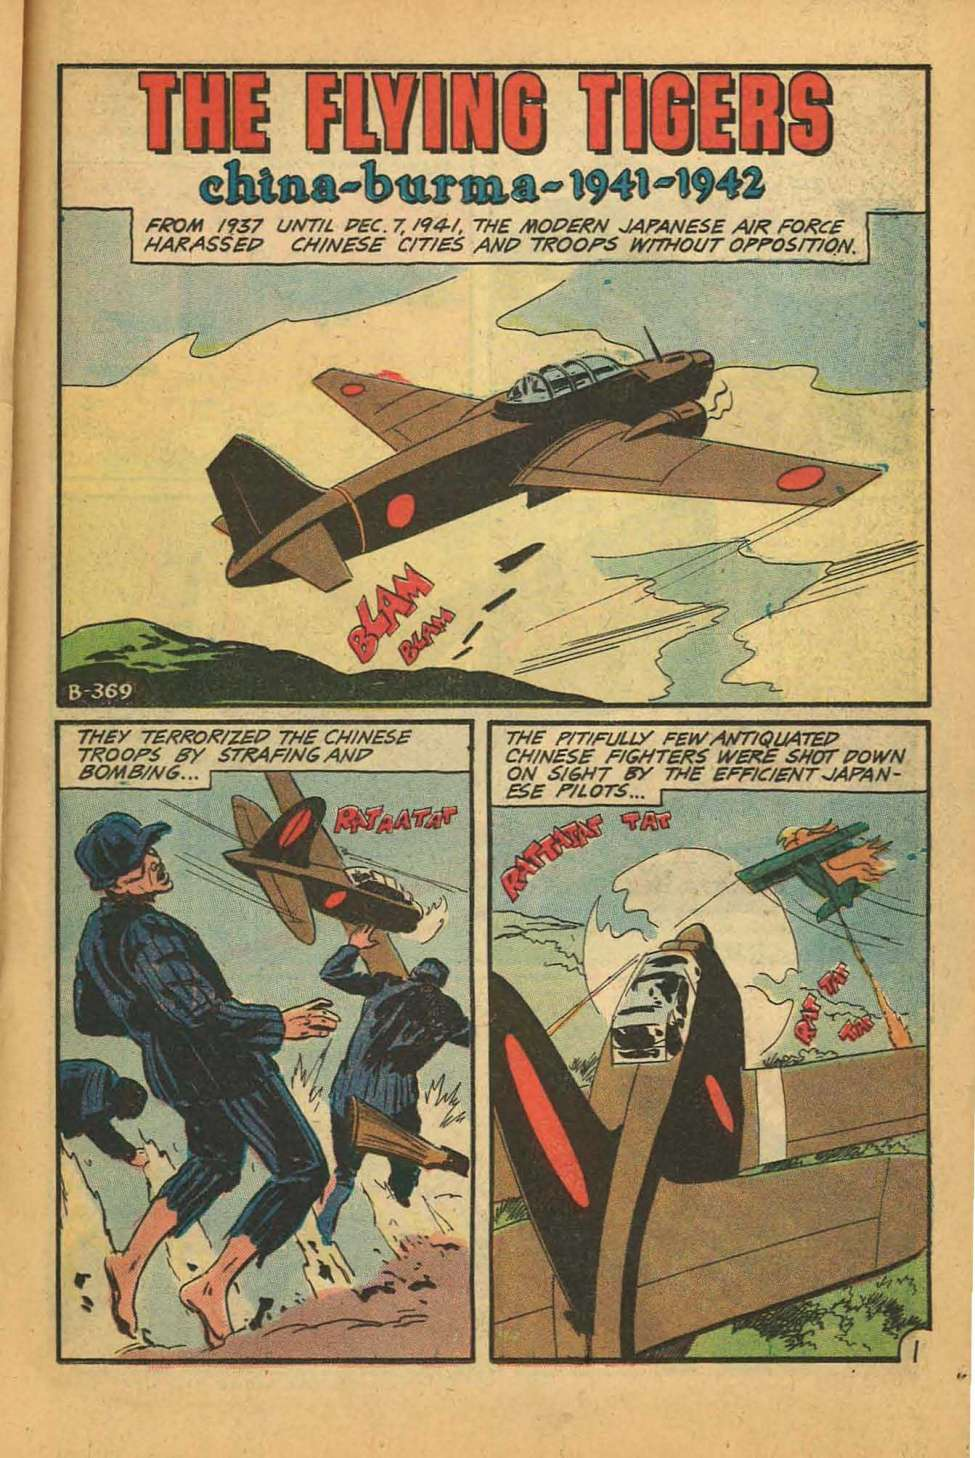 f1914131ac13 FLYING TIGERS: The Boy In The Man Remembers The Legend